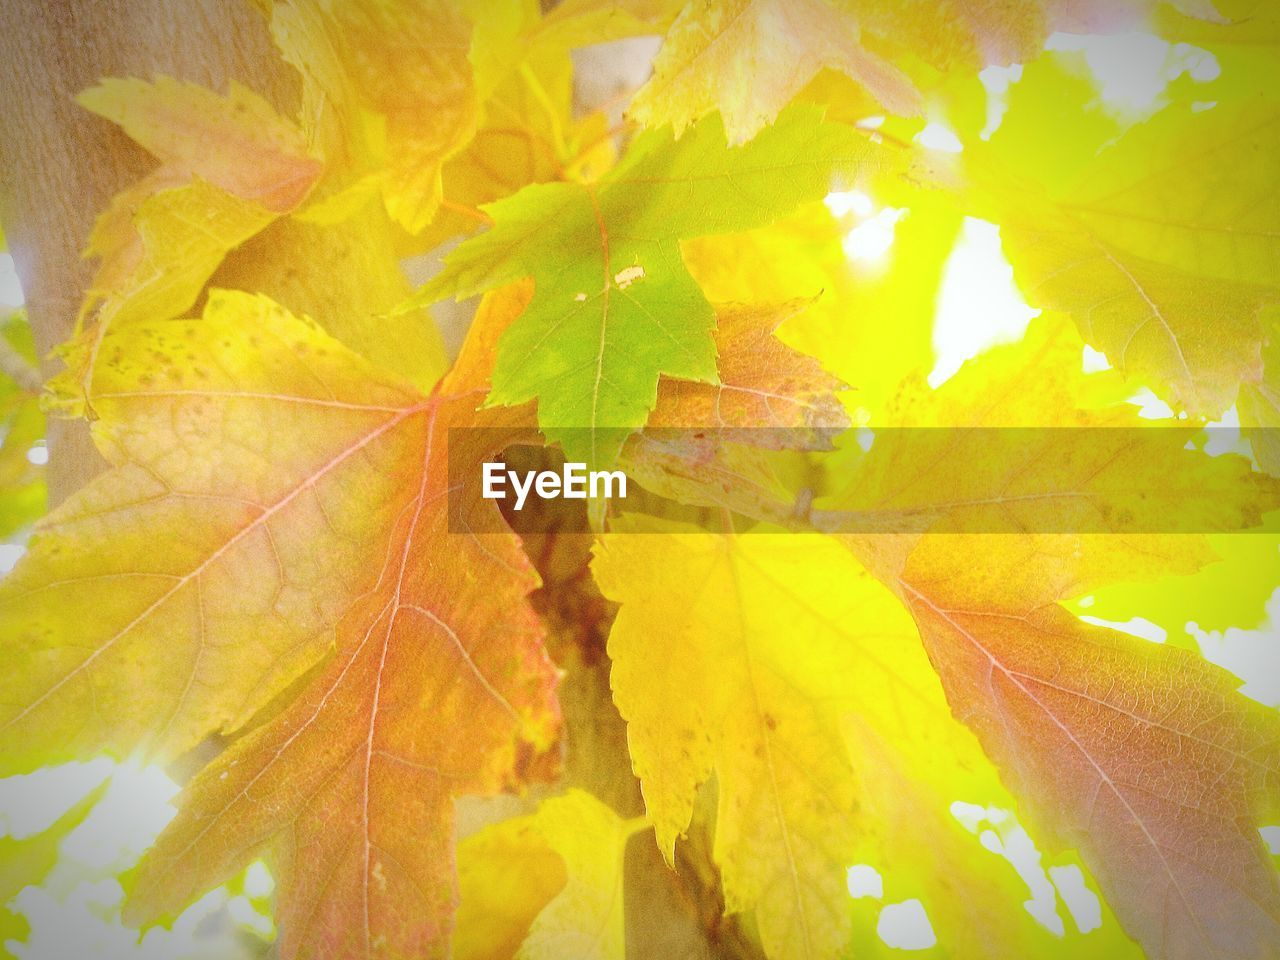 leaf, autumn, change, nature, beauty in nature, close-up, outdoors, no people, day, yellow, growth, fragility, green color, maple leaf, maple, freshness, animal themes